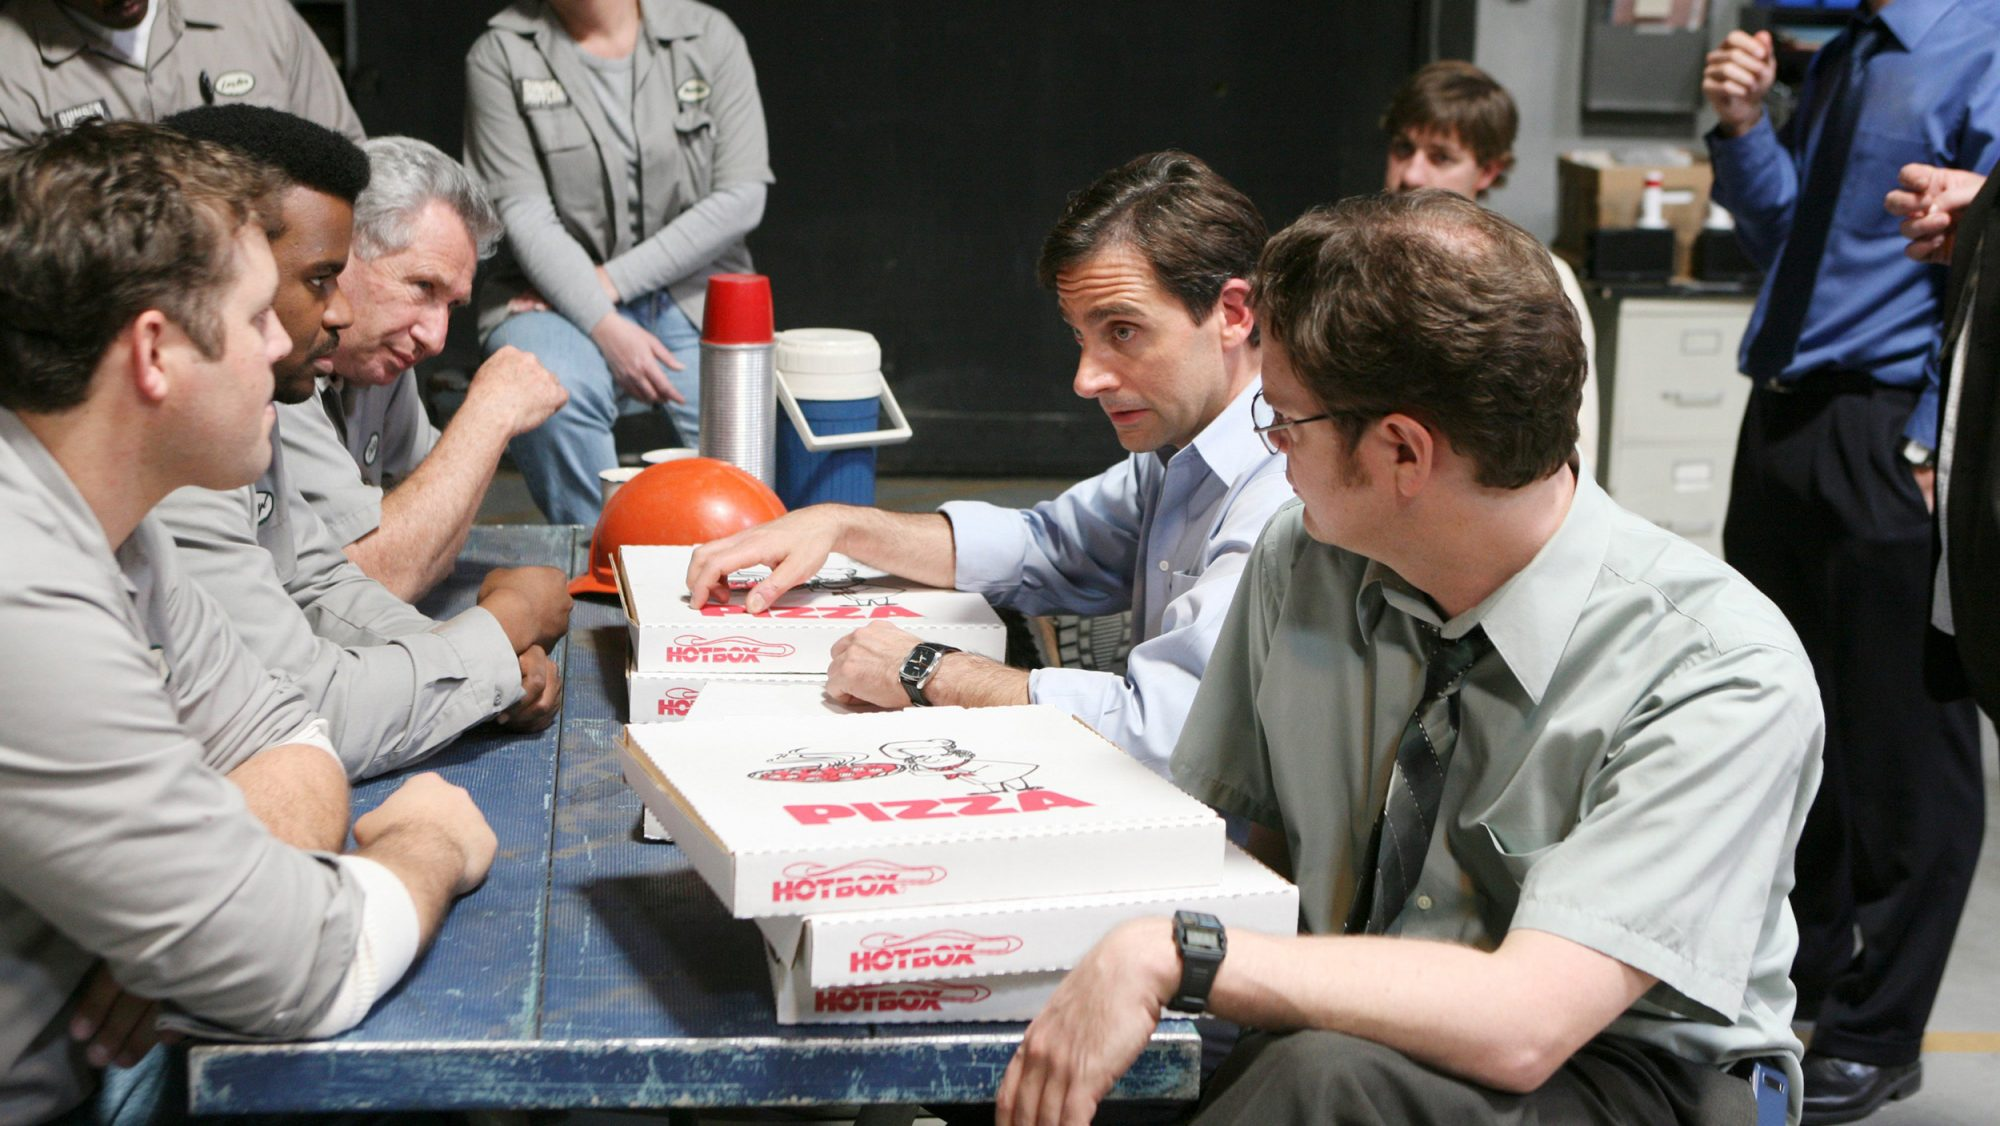 Pizza Makes You More Productive at Work